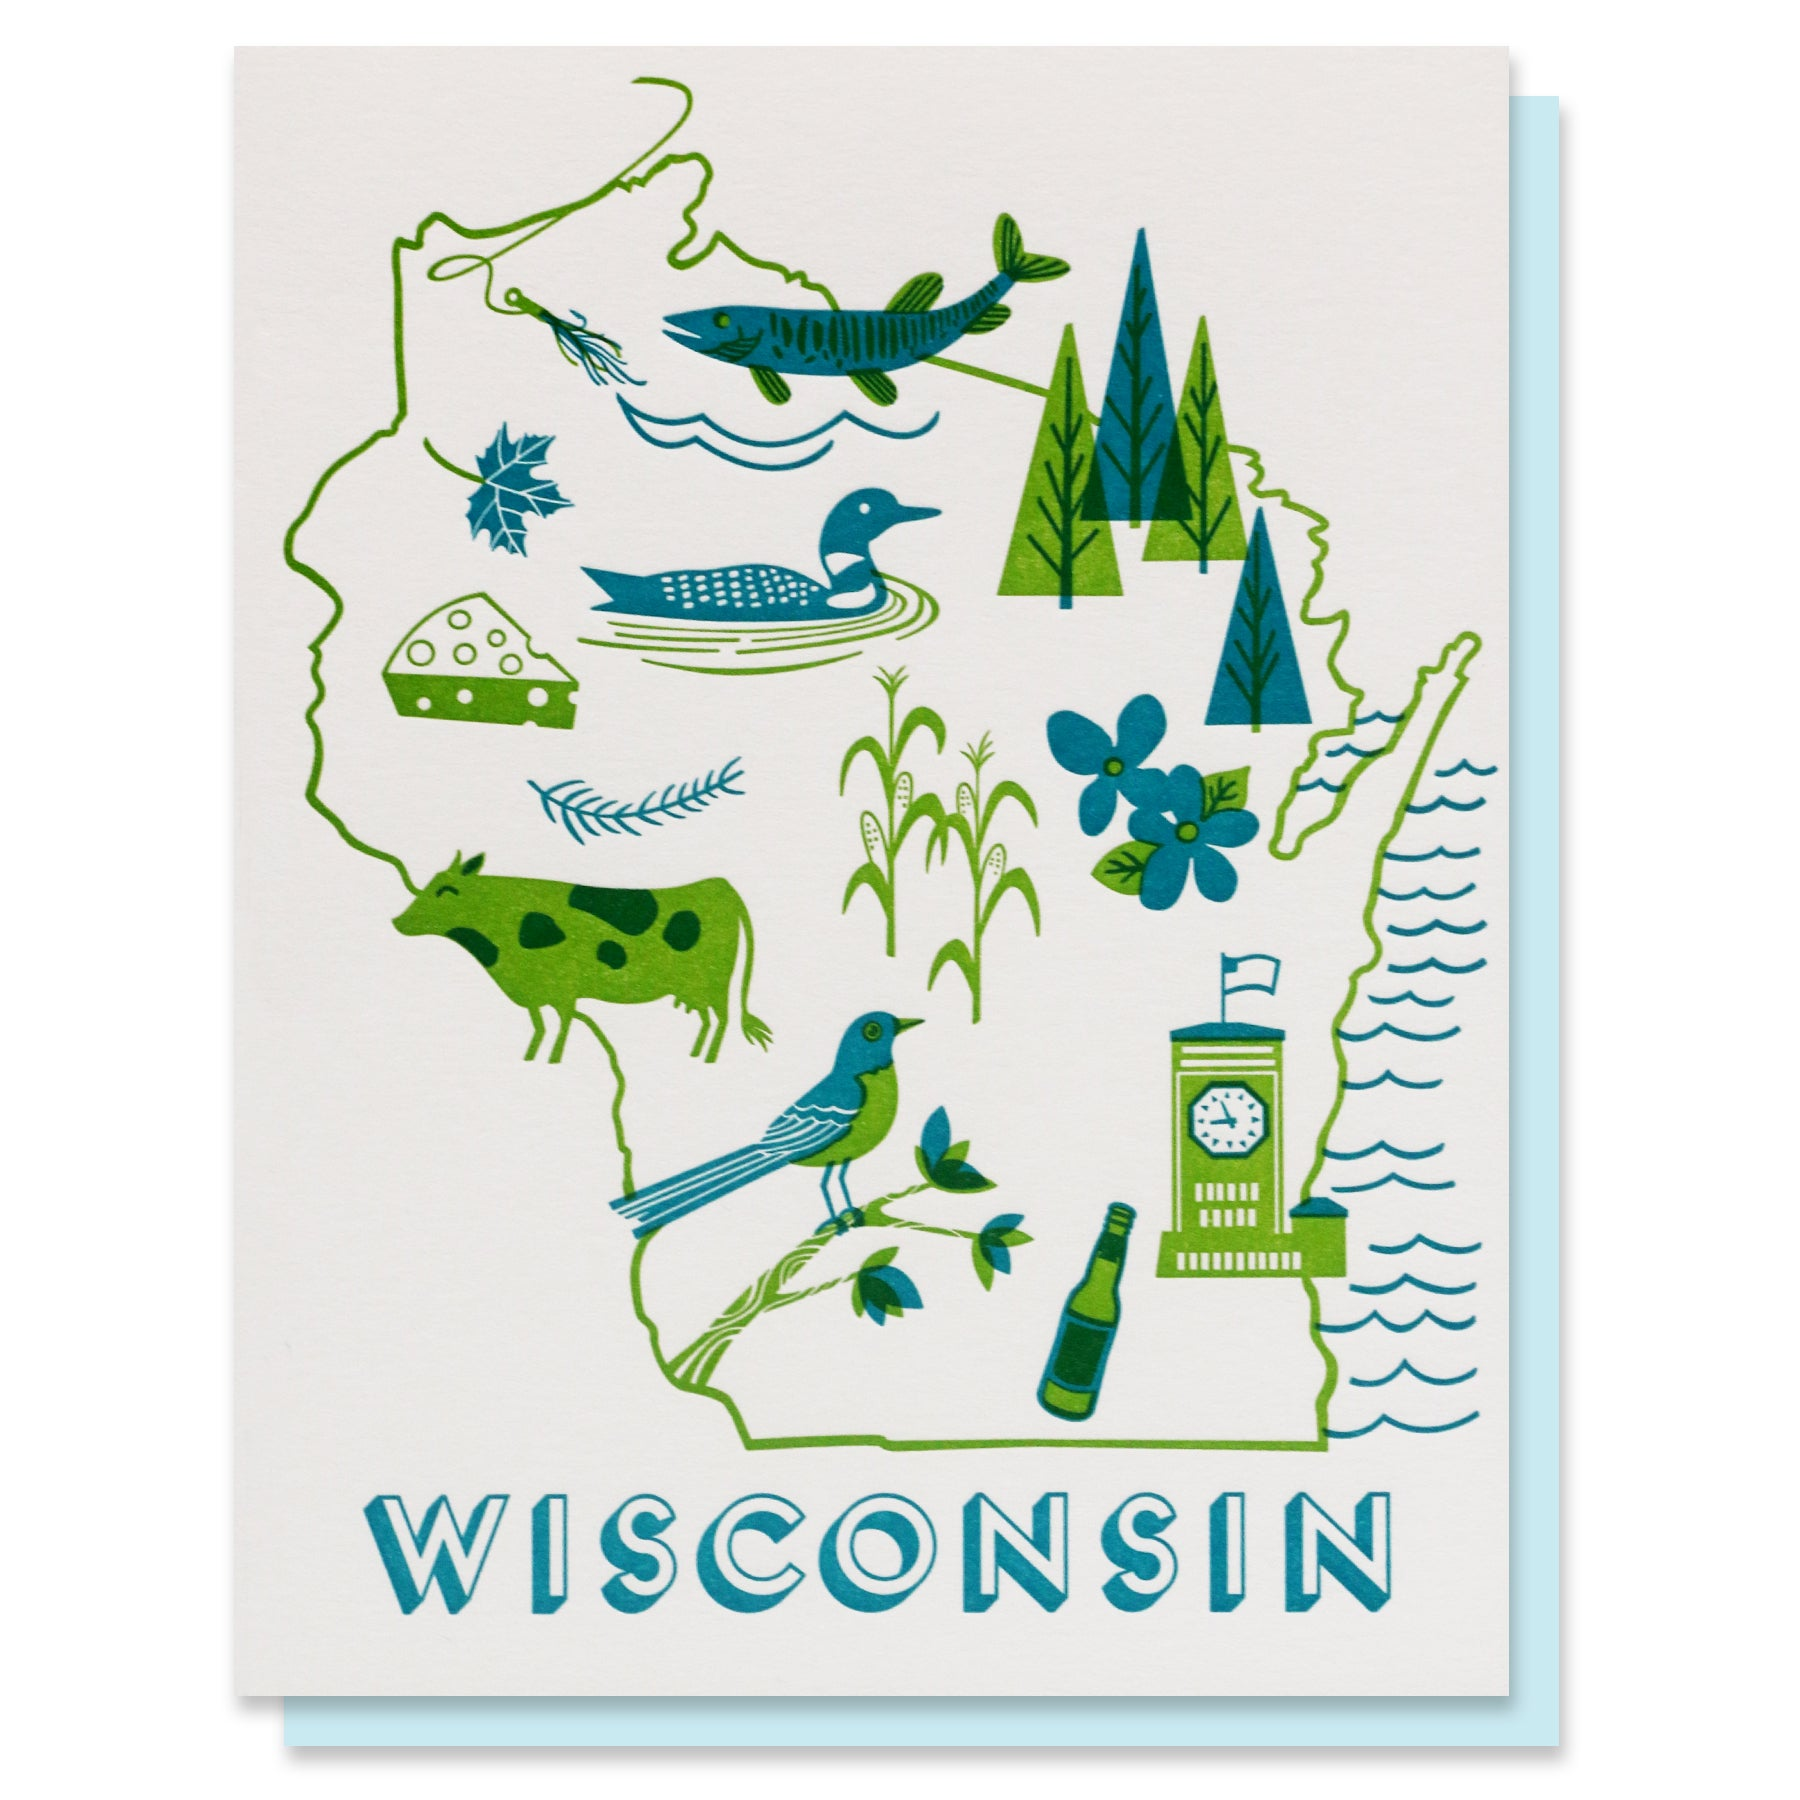 Wisconsin State Love Card